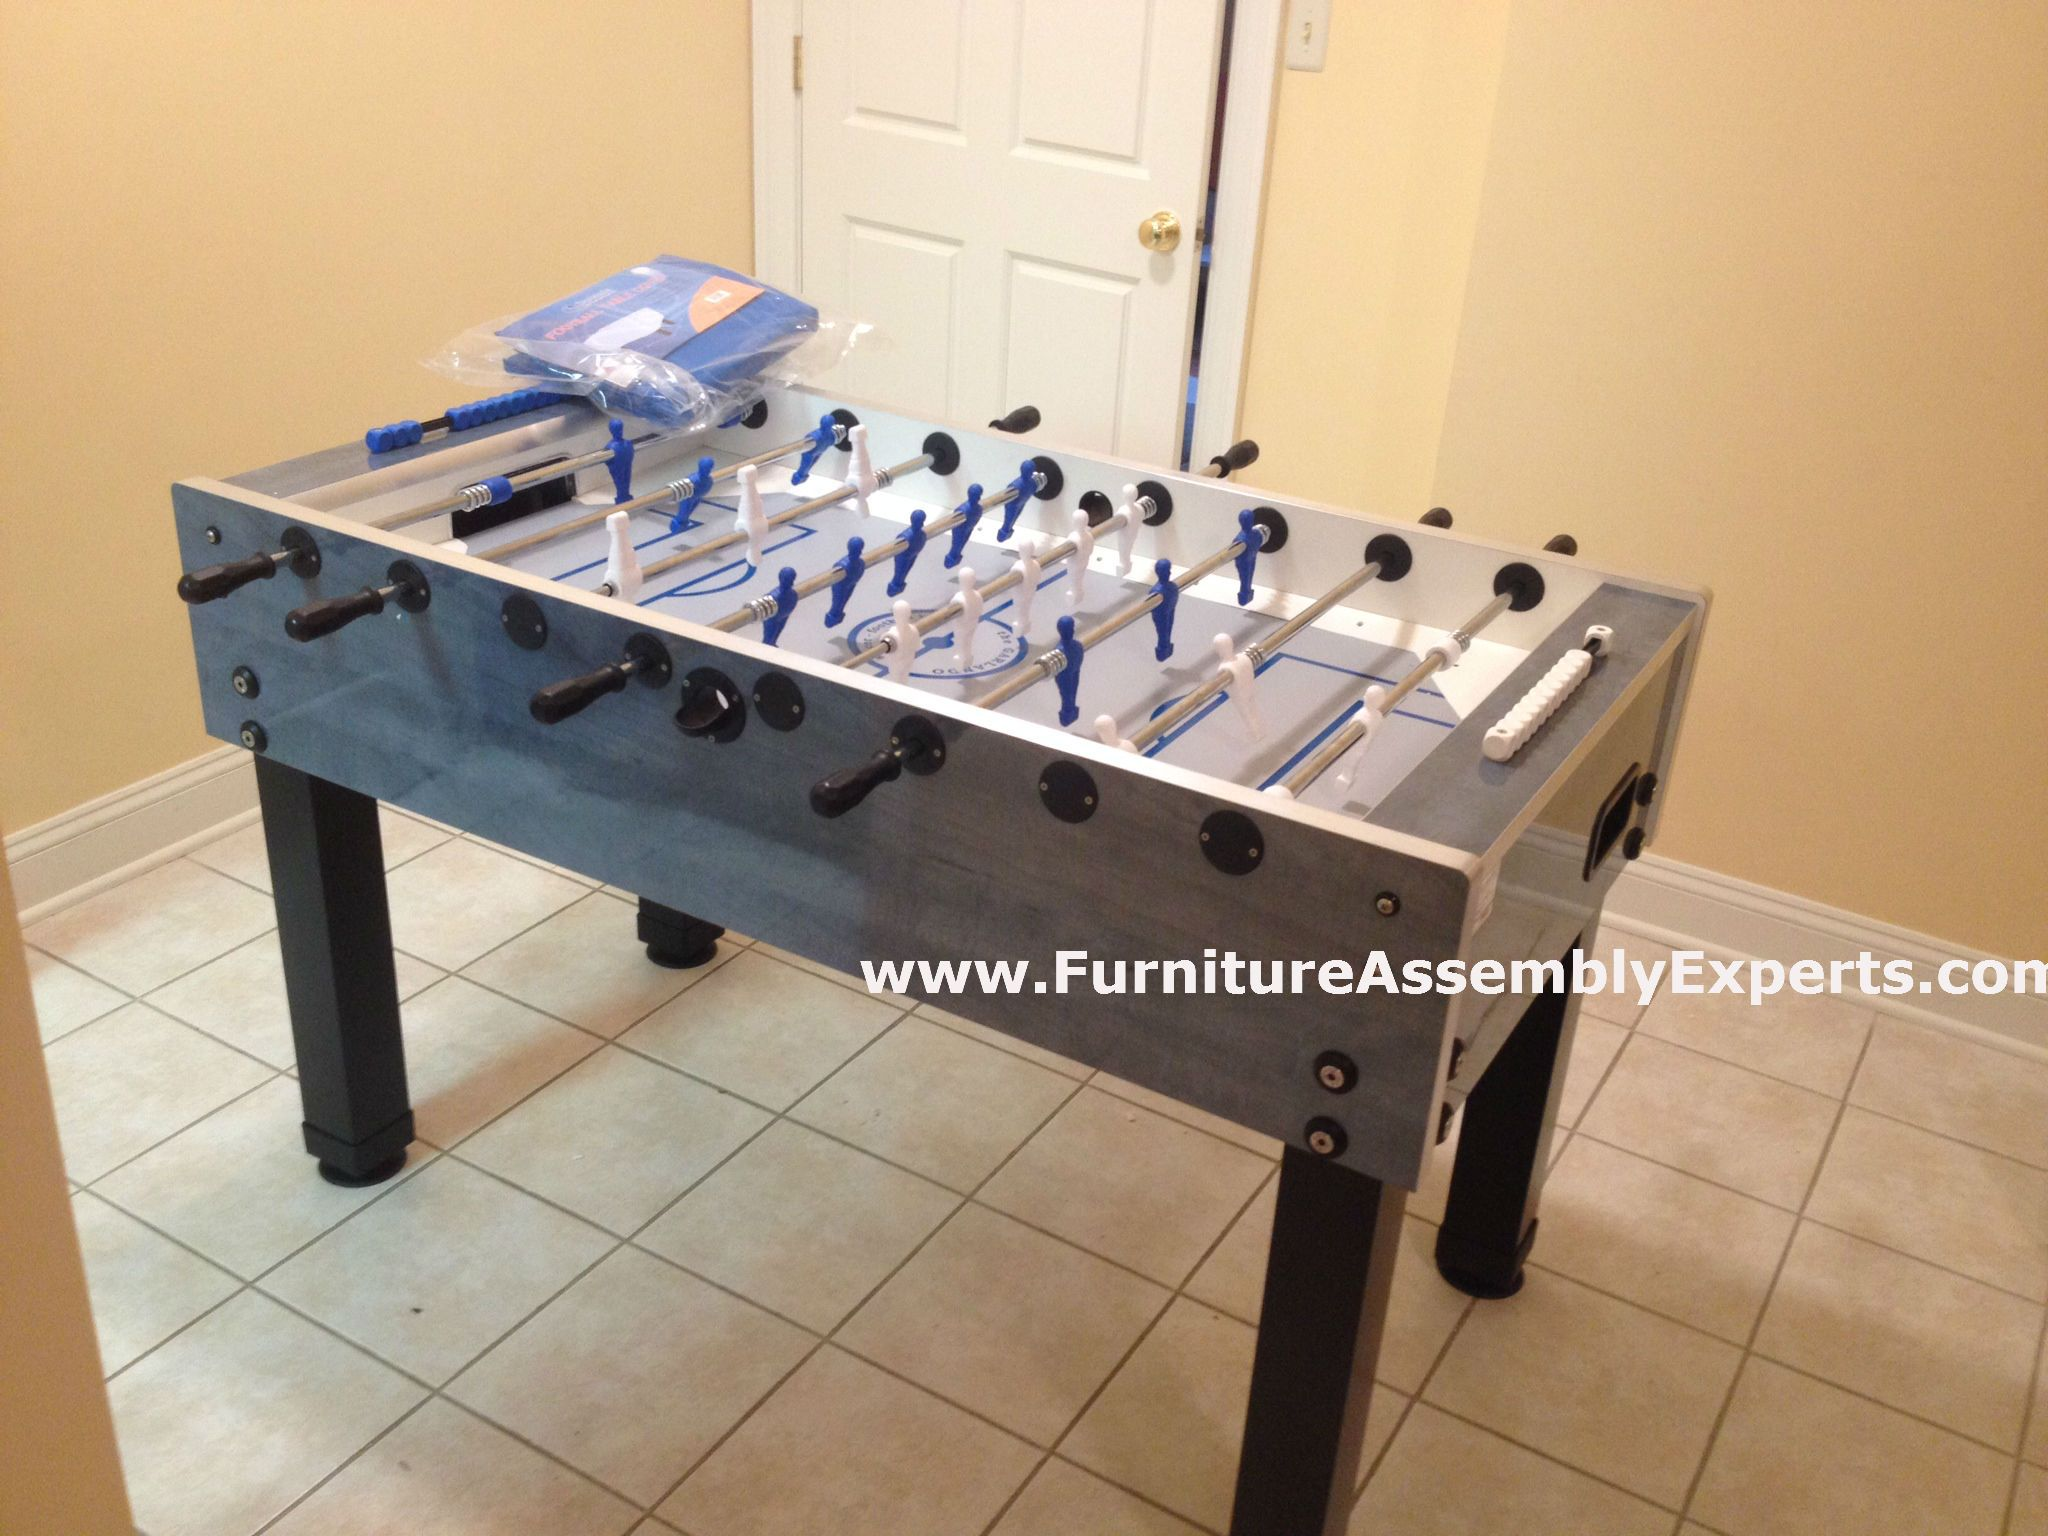 disassembly experts bed watch assembly furniture bunk youtube by